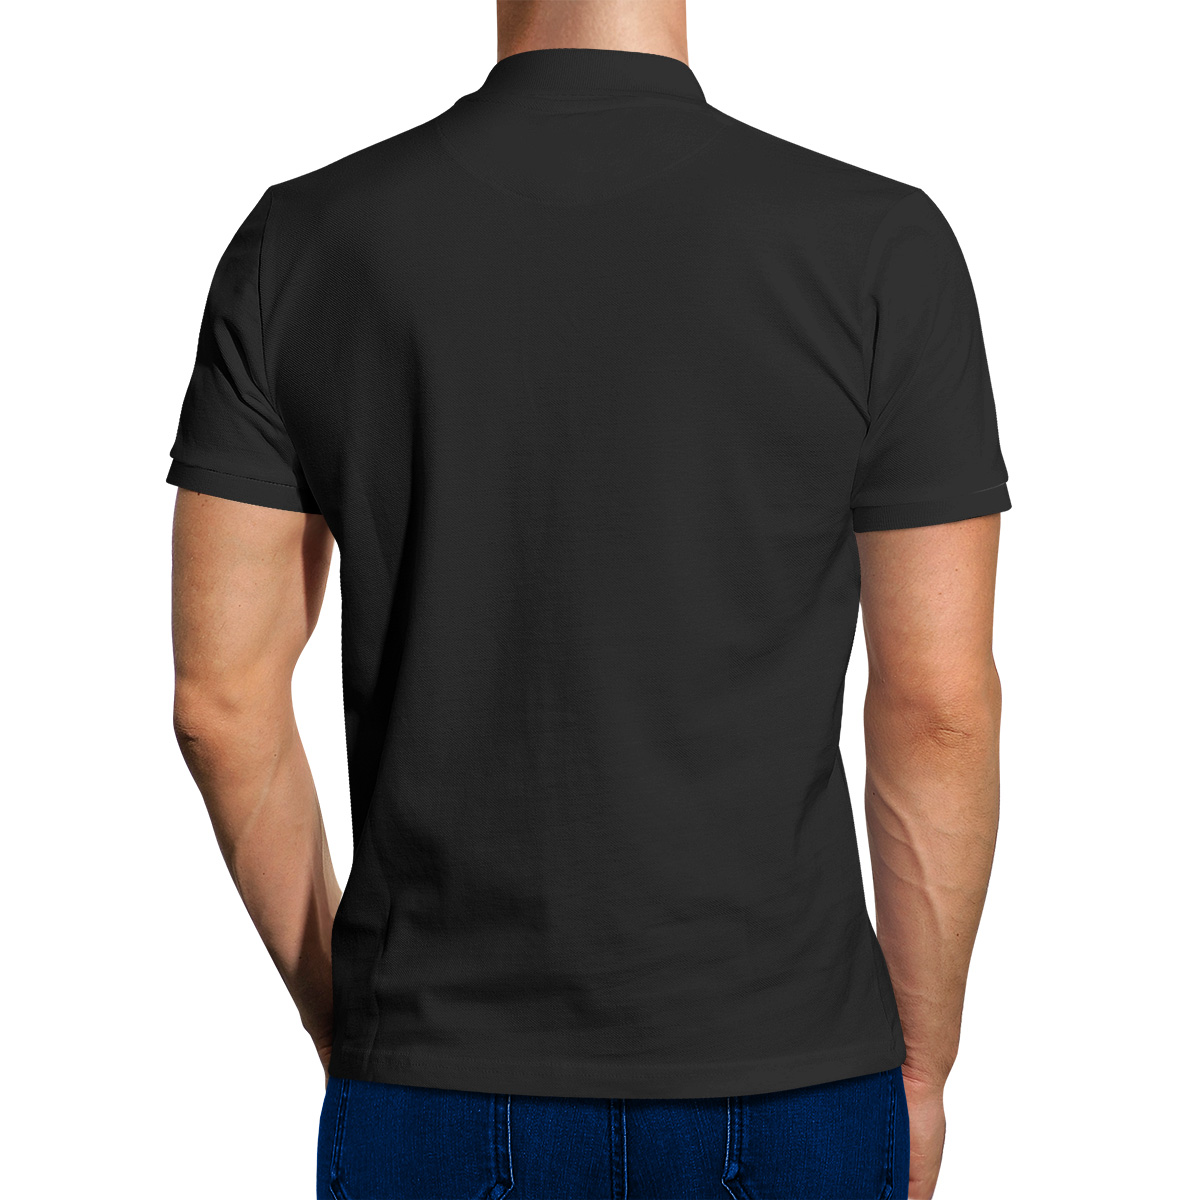 Black T Shirt Rear